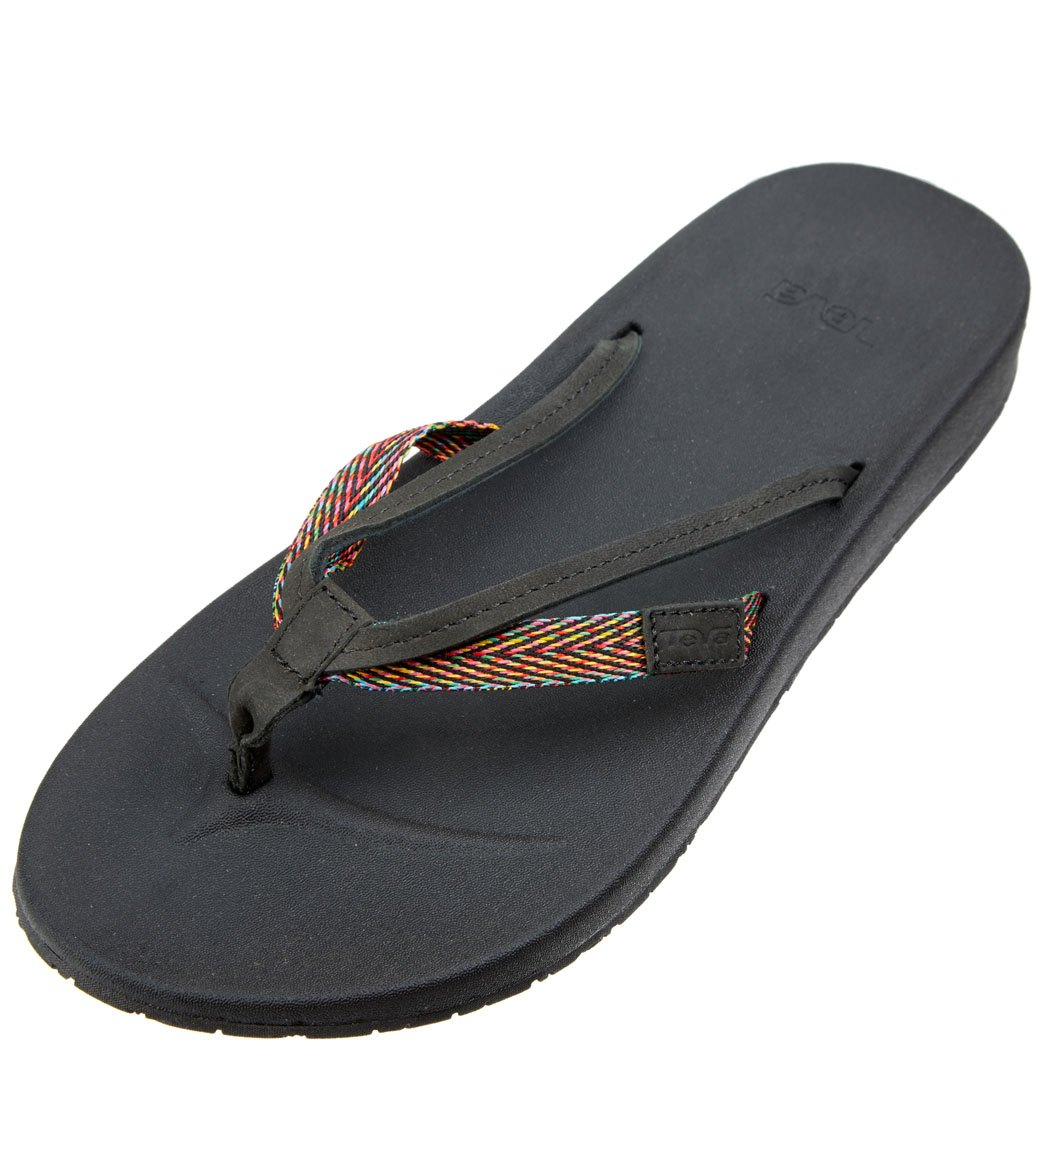 4ec8577ffd45 Teva Women s Azure 2 Strap Flip Flop at SwimOutlet.com